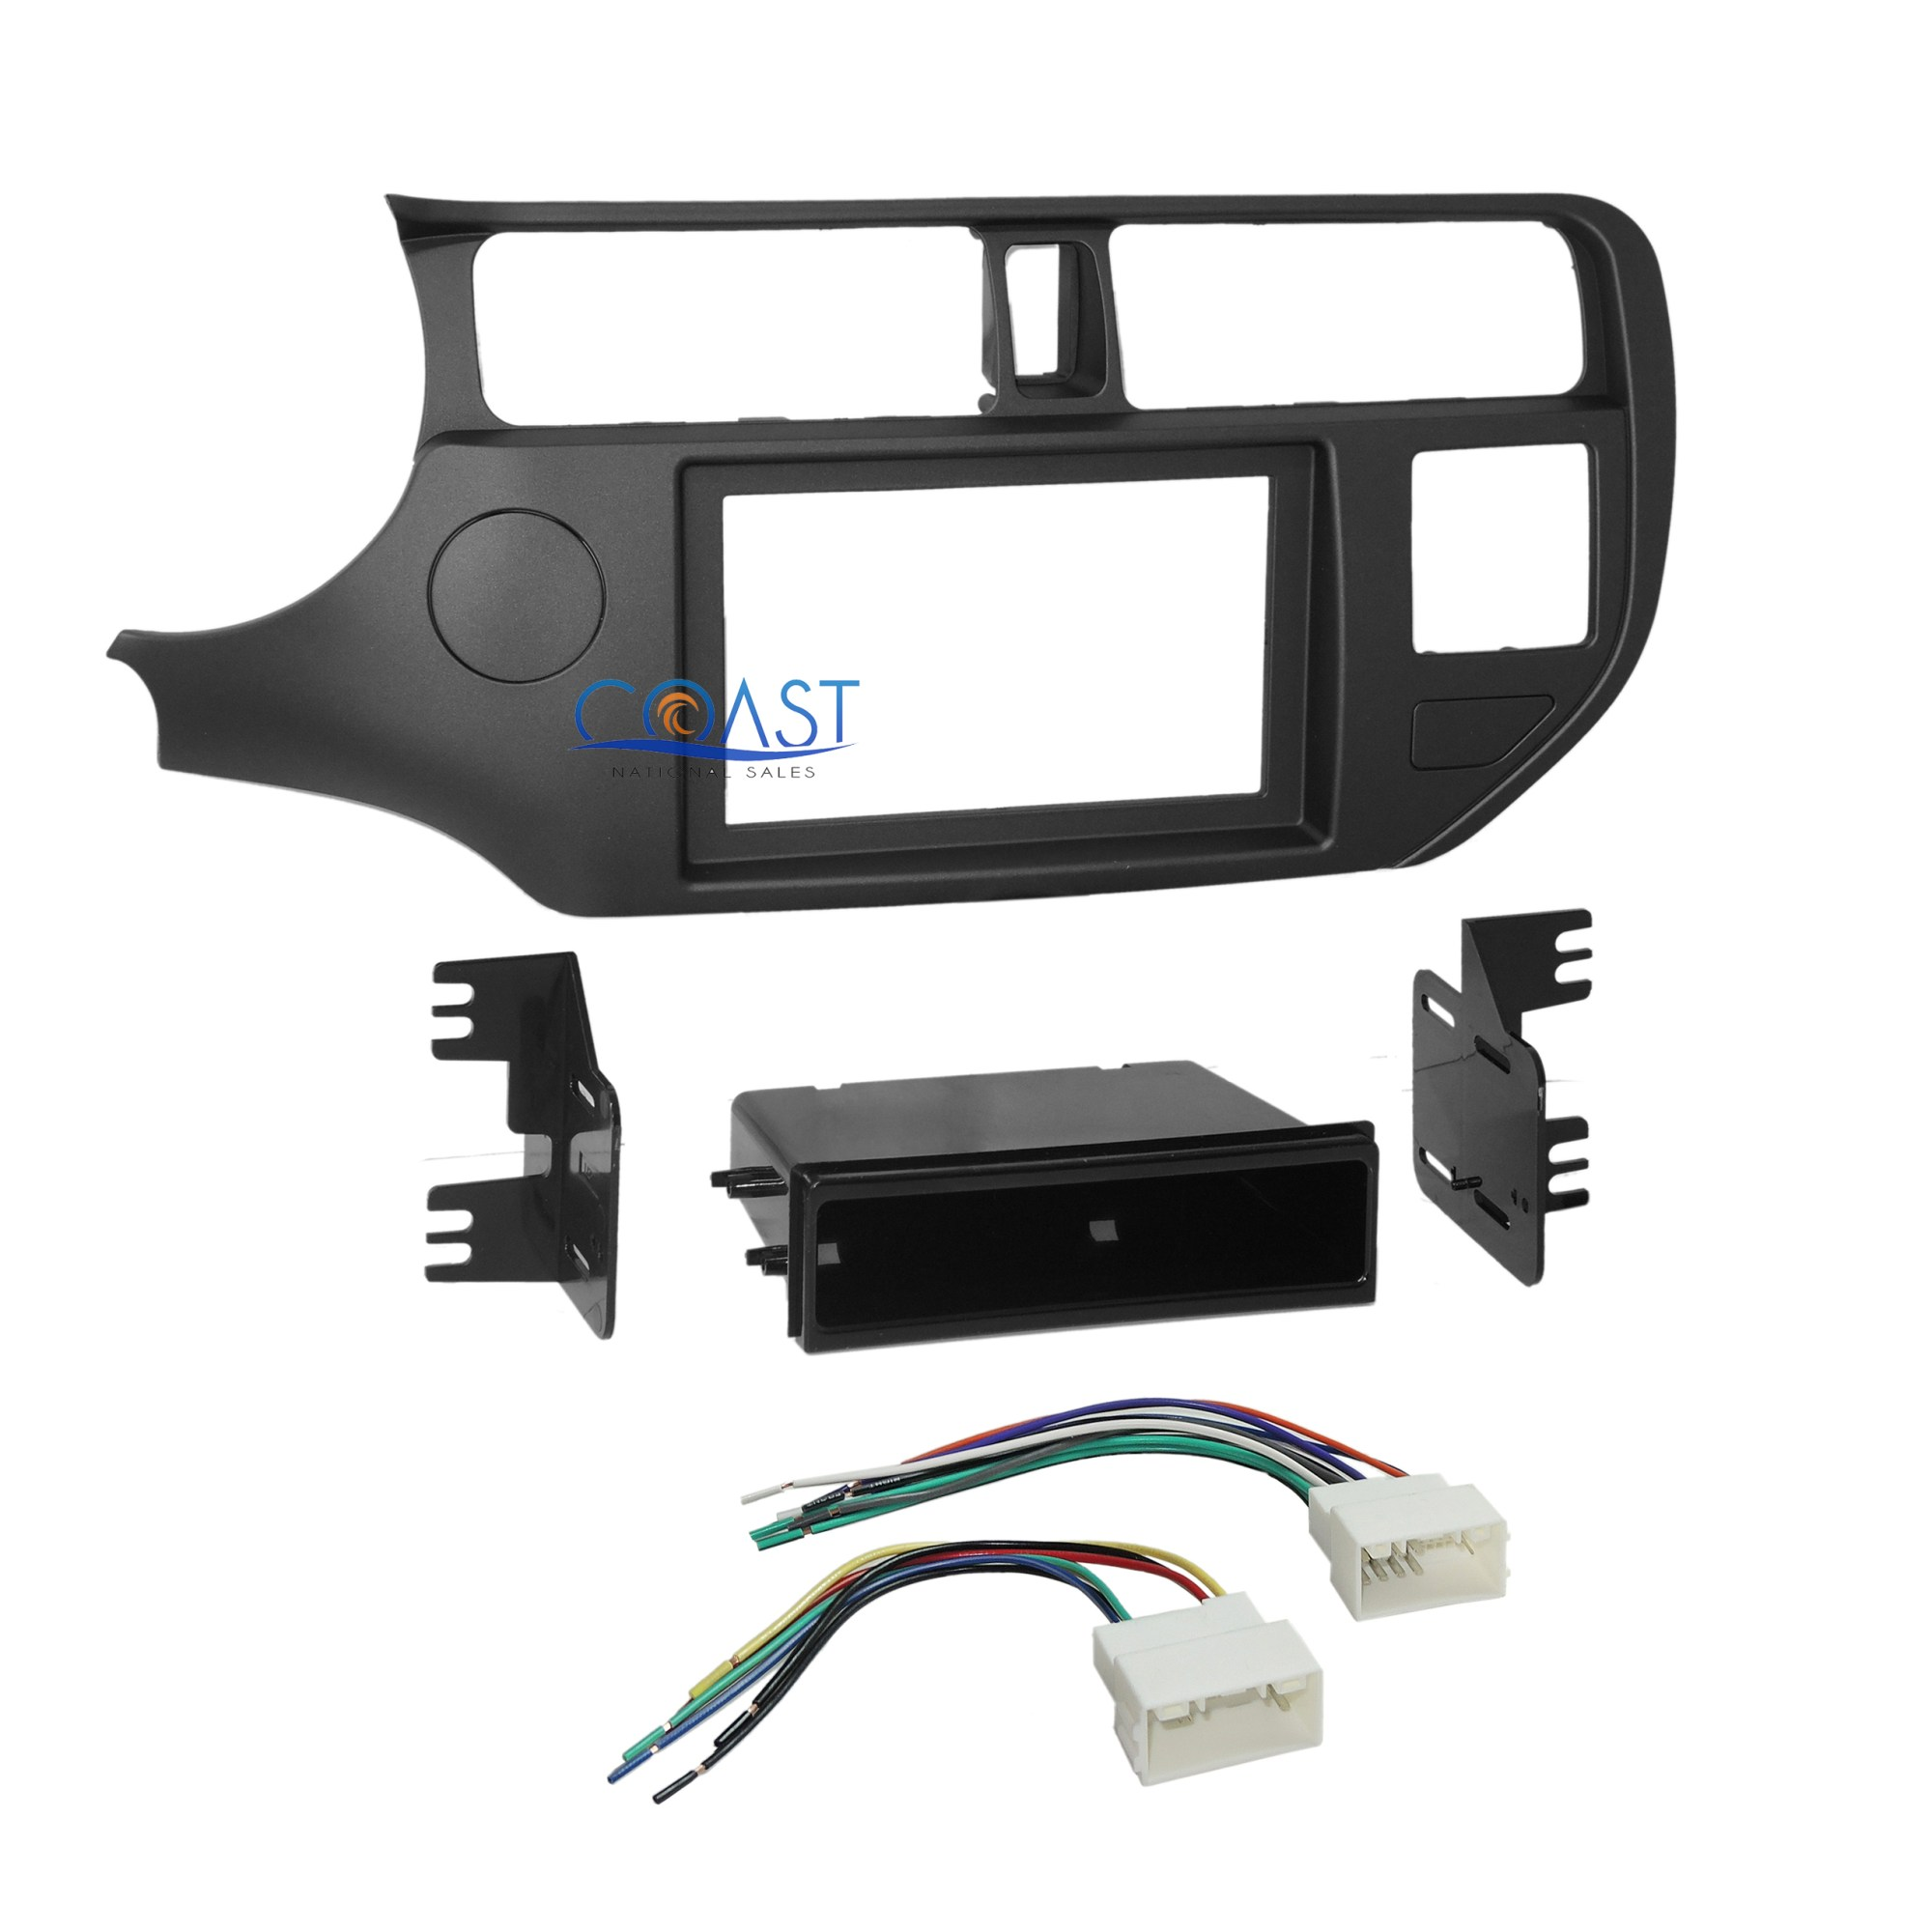 hight resolution of car radio stereo din 2 din dash kit pocket wire harness for 2012 up kia rio